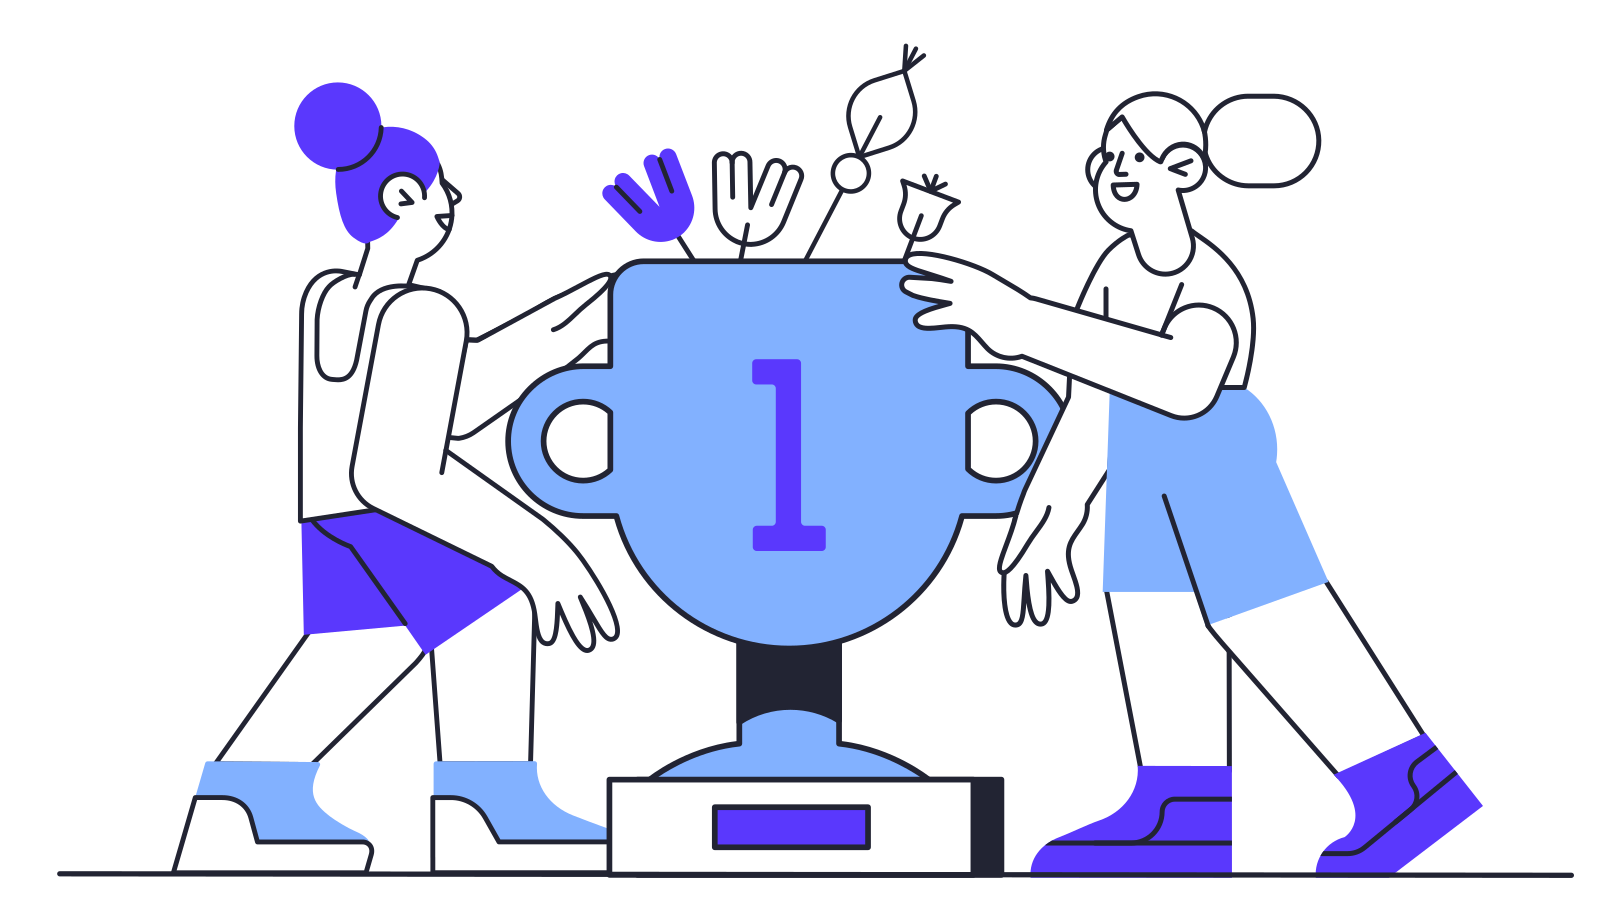 Team victory Clipart illustration in PNG, SVG